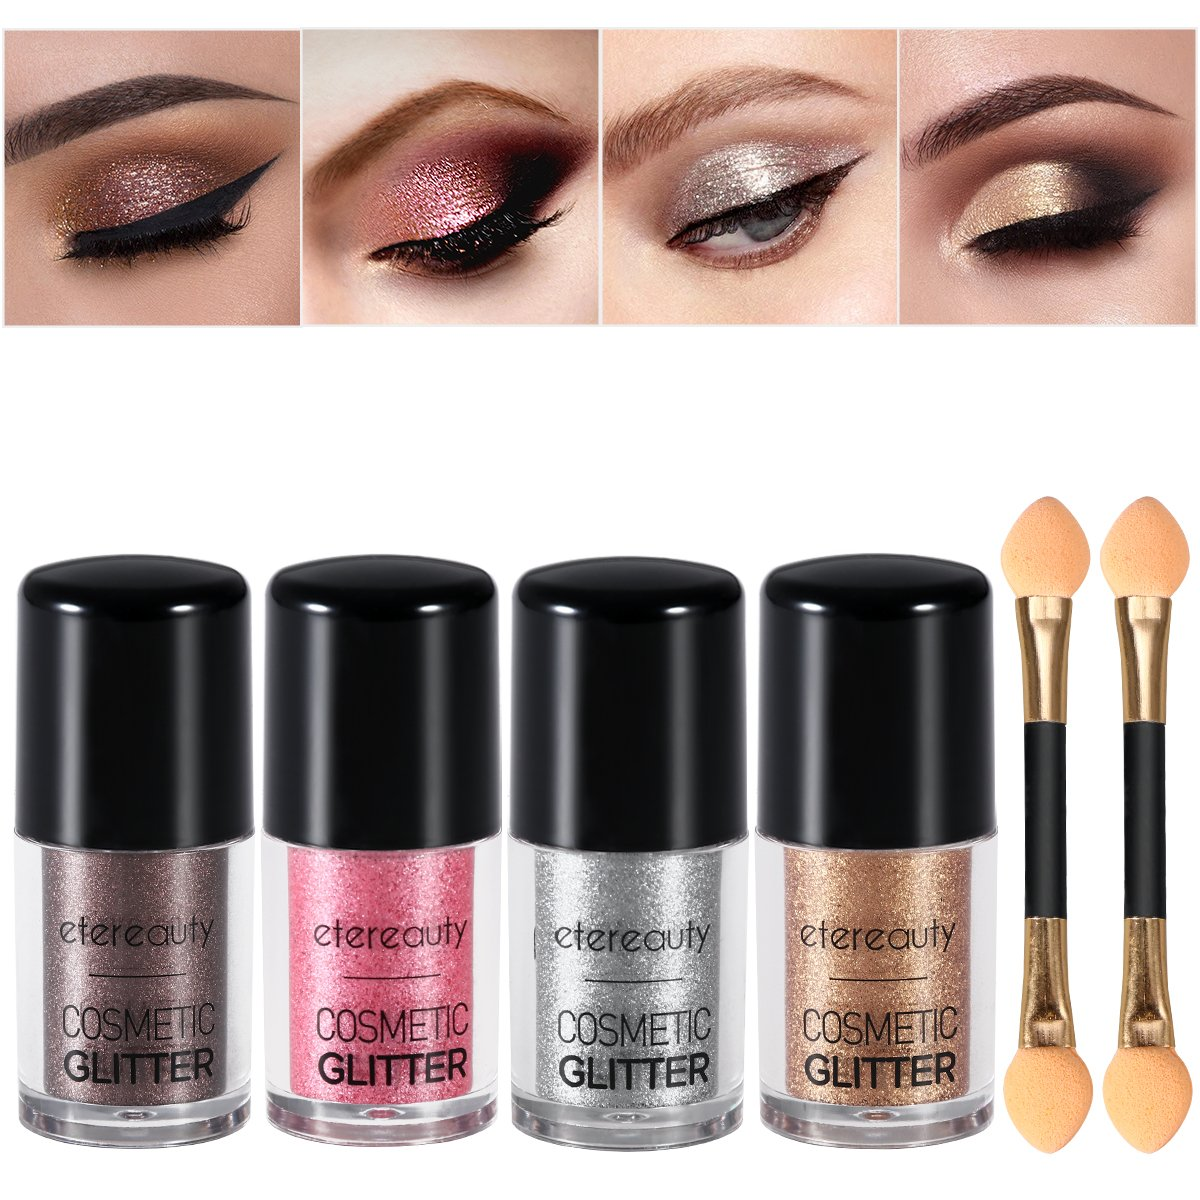 Glitter Eyeshadow, ETEREAUTY 4 Colors Glitter Powder Loose with Eyeshadow Brush